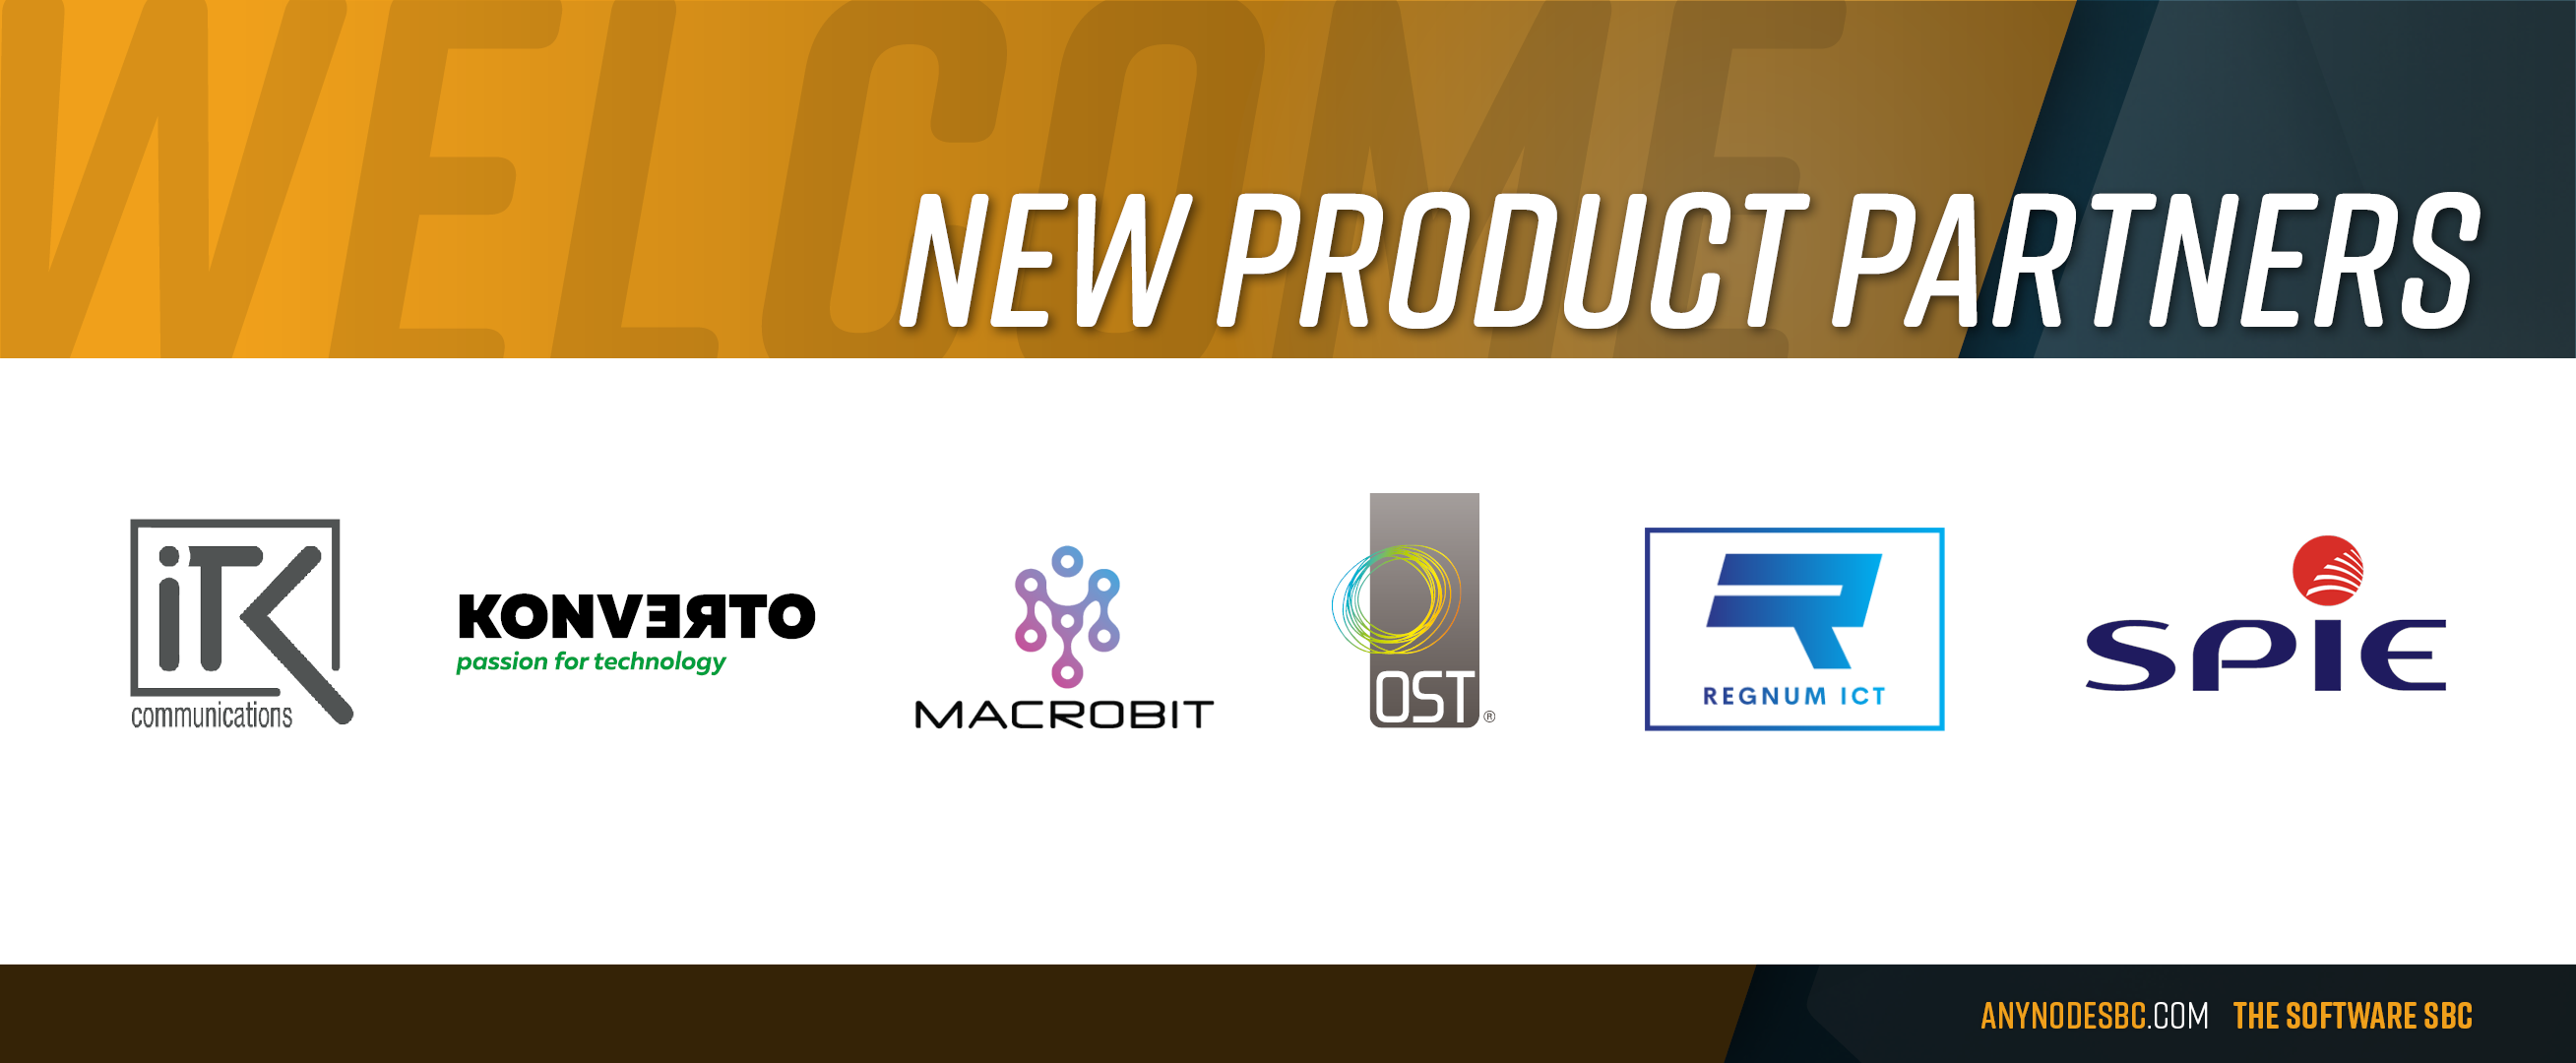 New anynode Product Partners in May 2020!